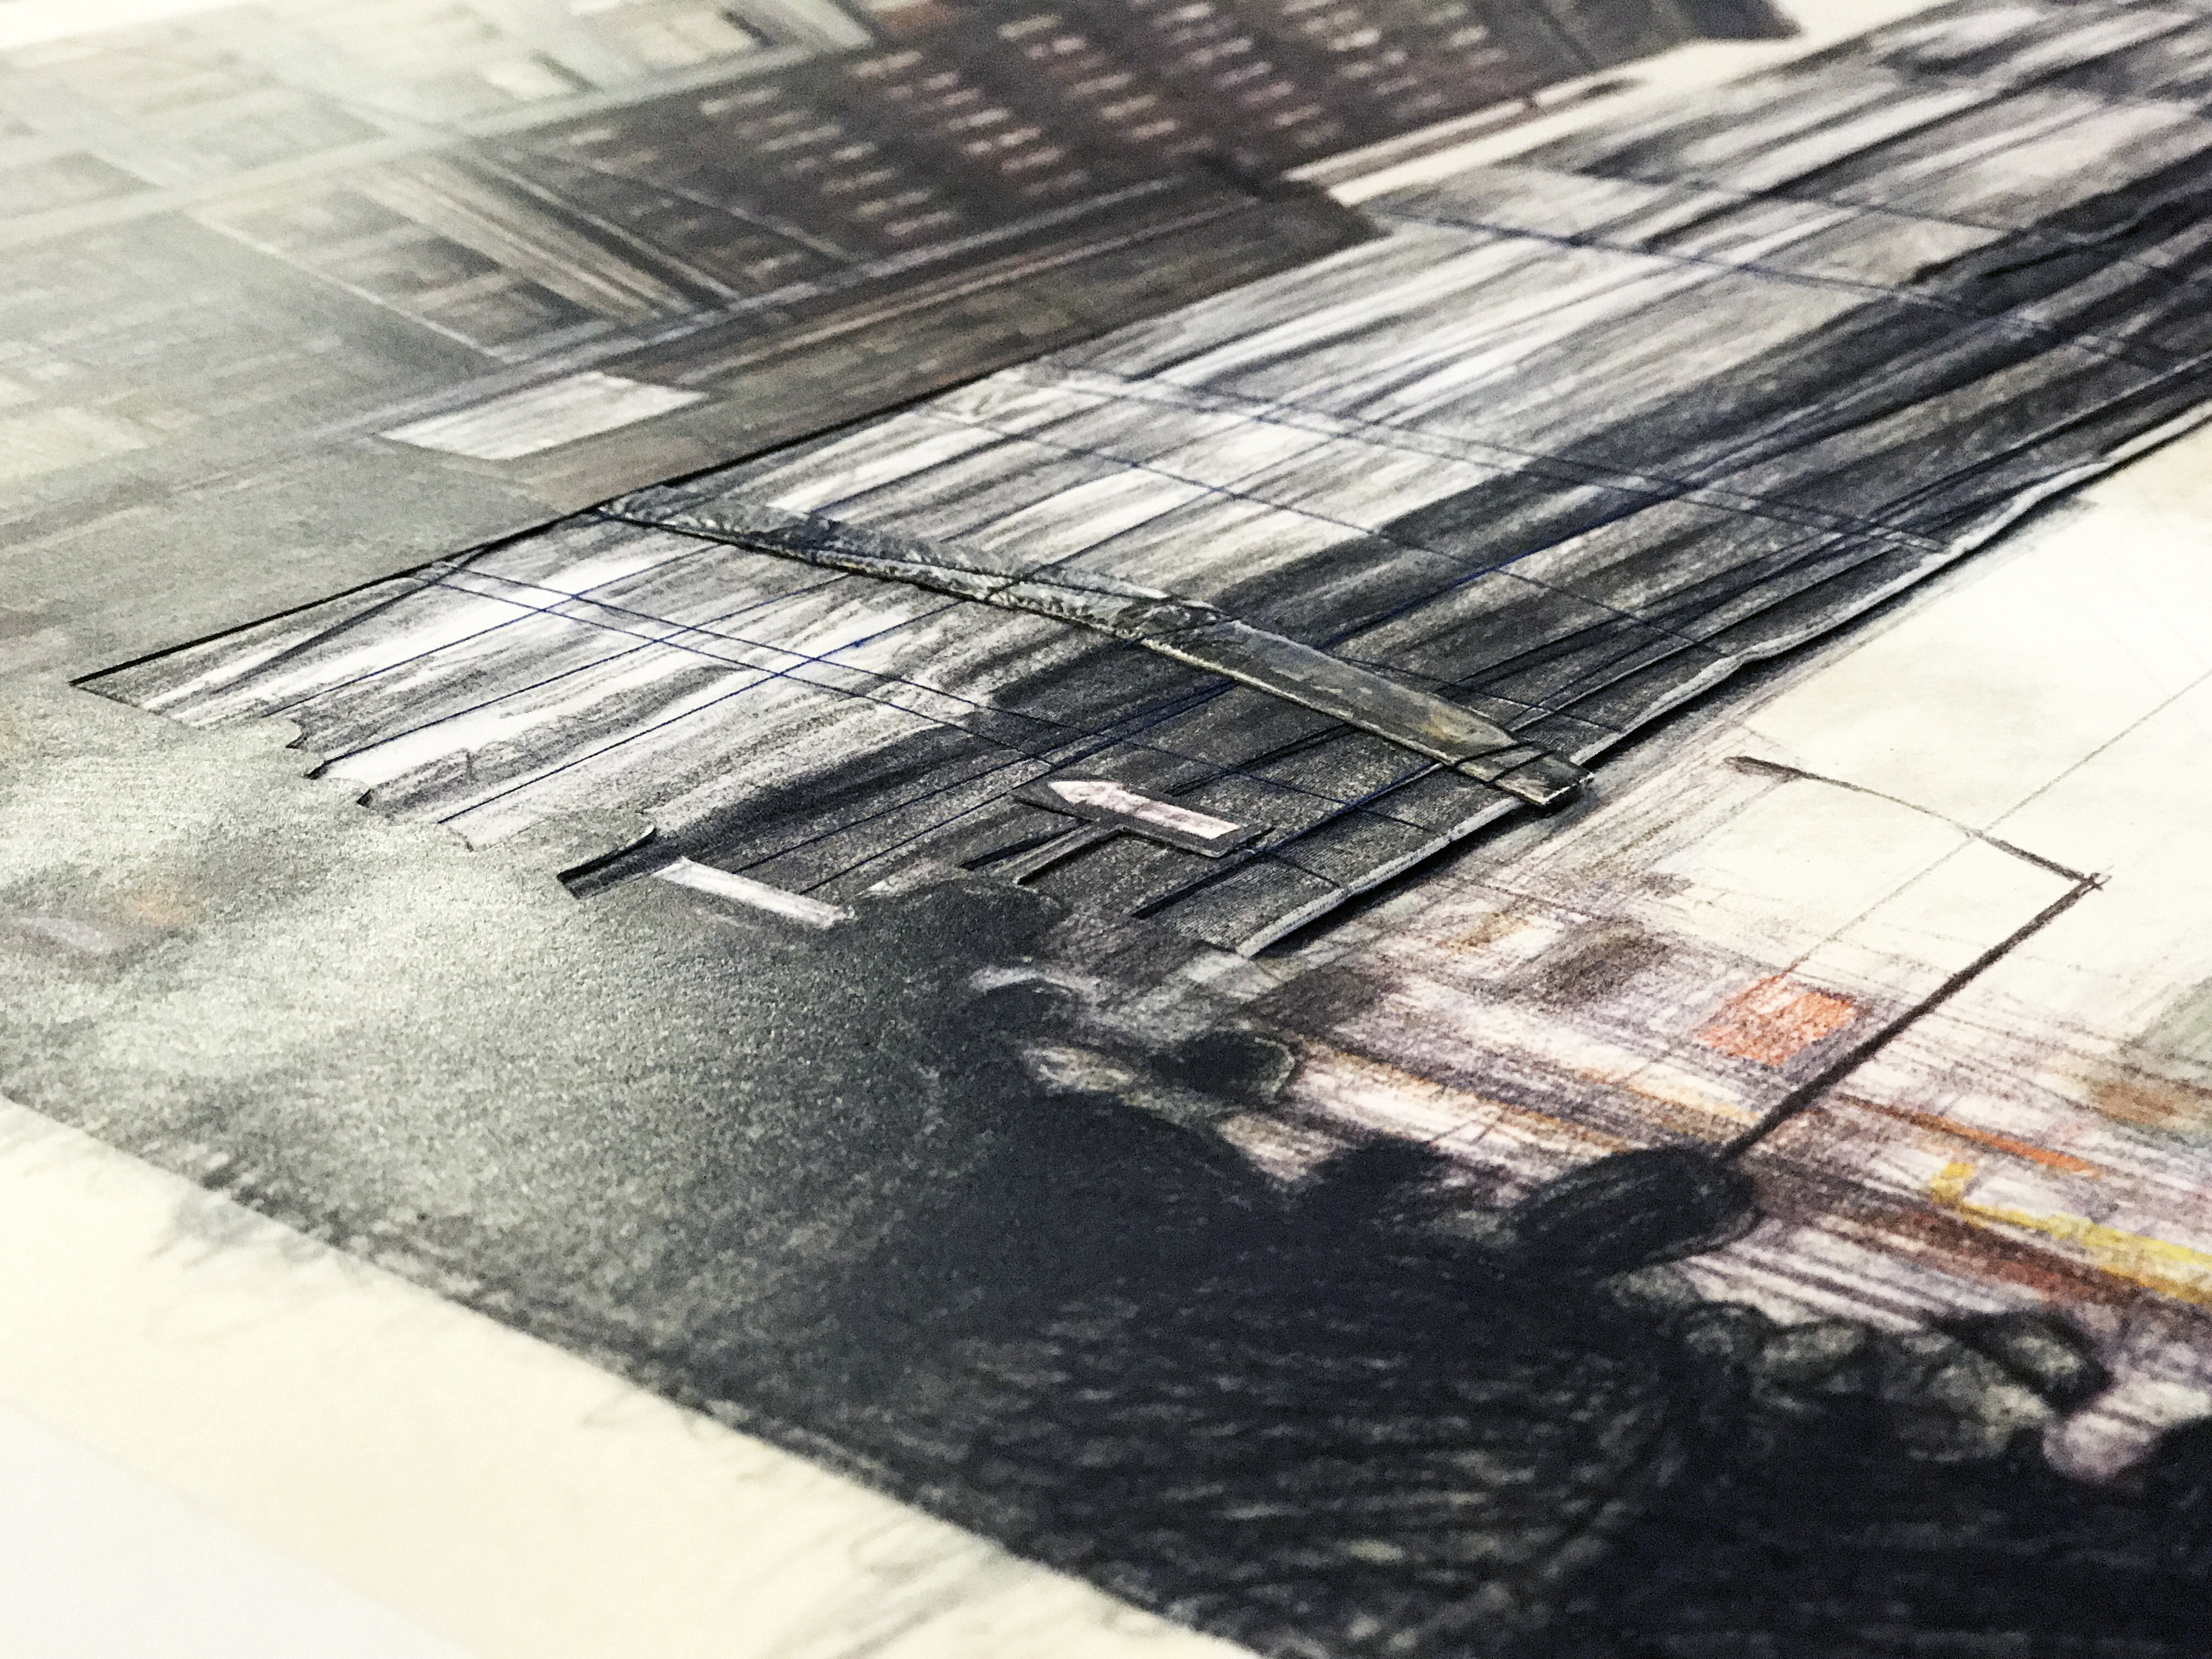 Wrapped Building Times Square New York Christo Art Mixed Media For Sale Price